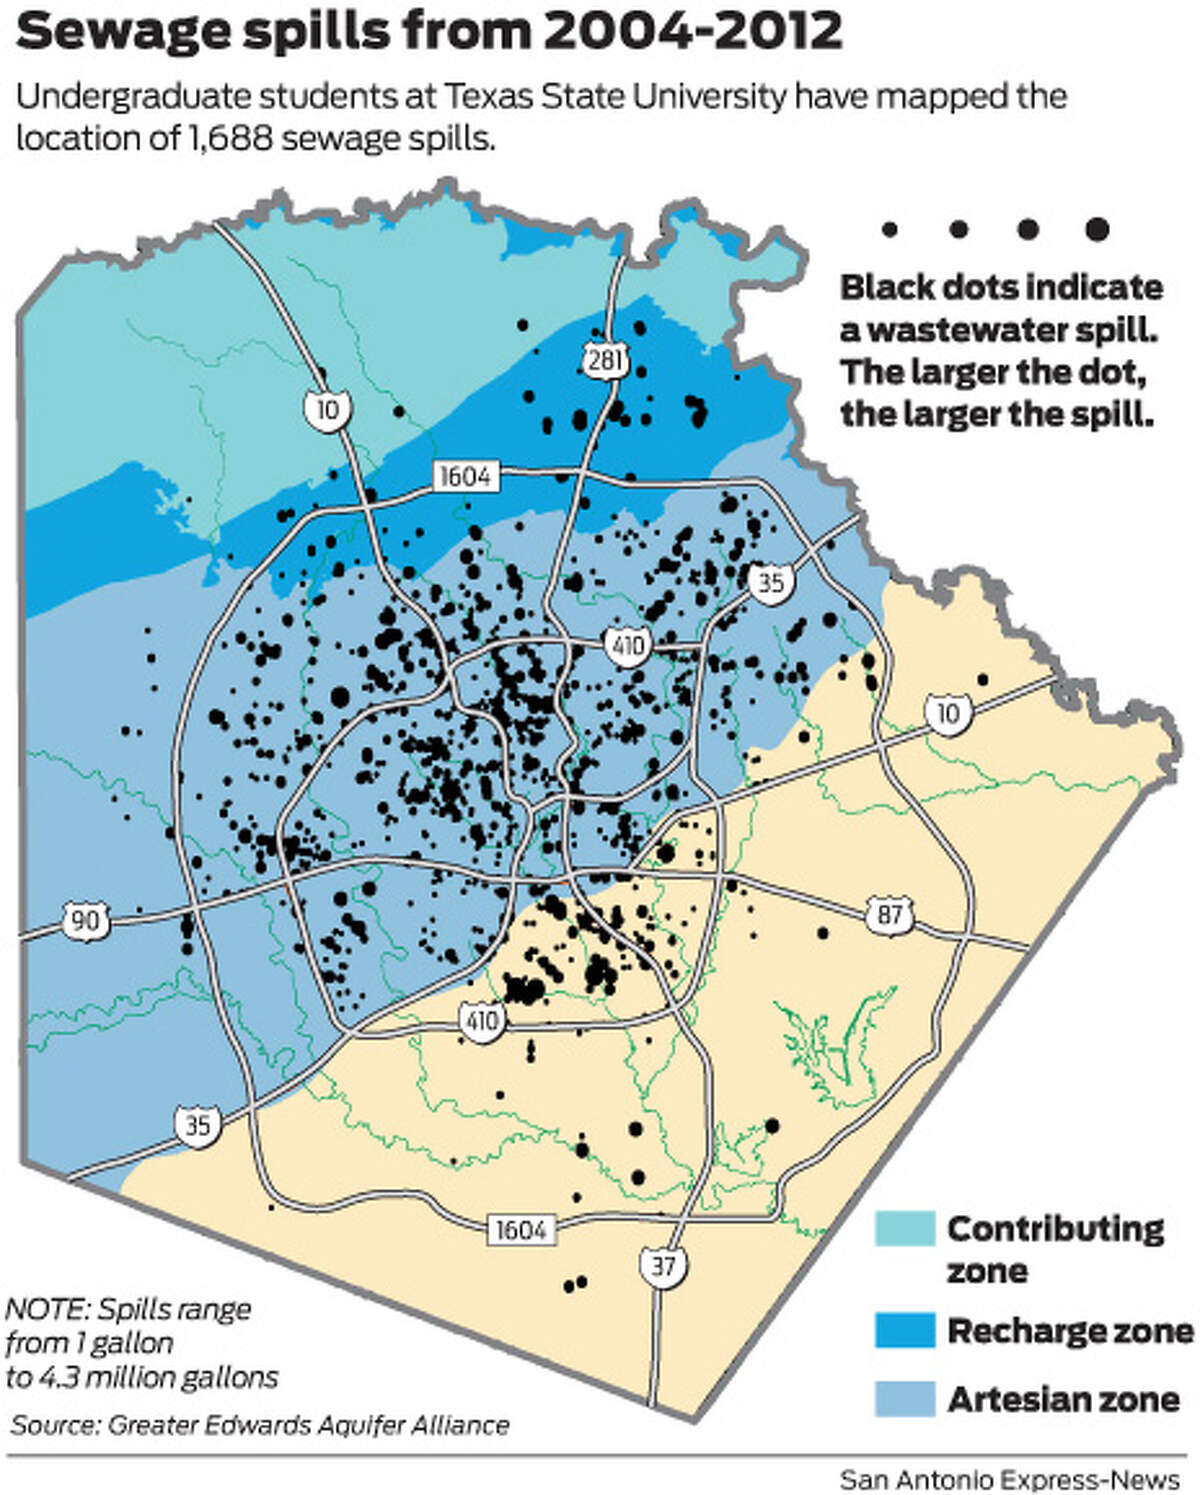 Undergraduate students at Texas State University have mapped the location of 1,688 sewage spills.